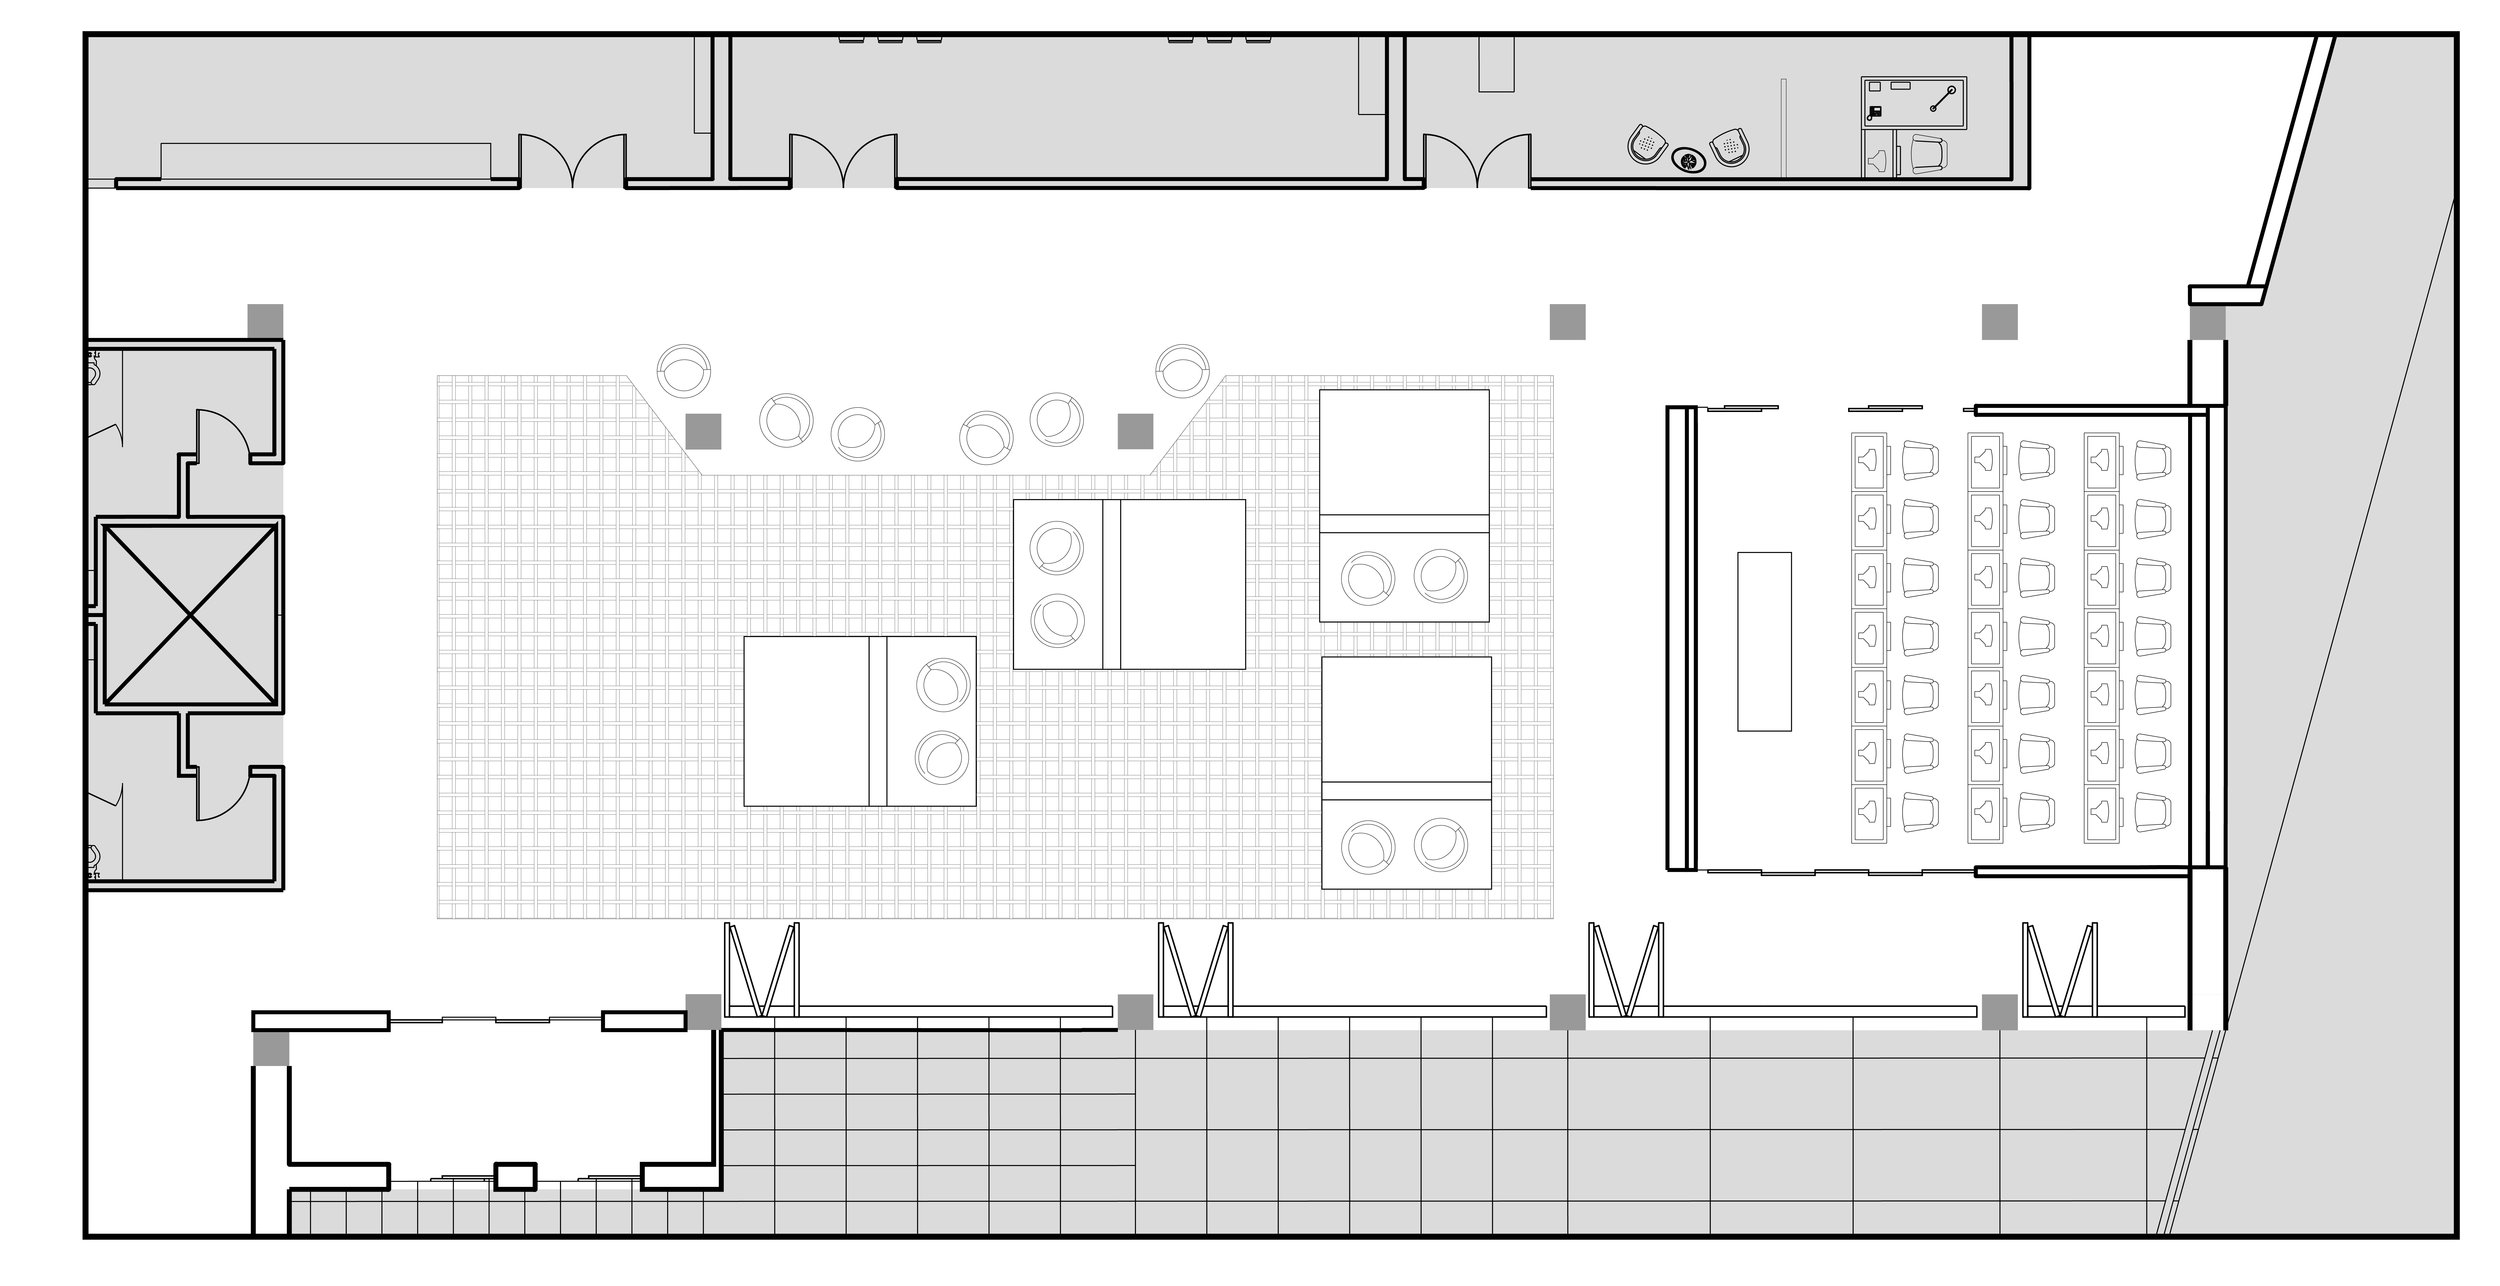 Zoom-in of first floor plan of the ThinkLab area